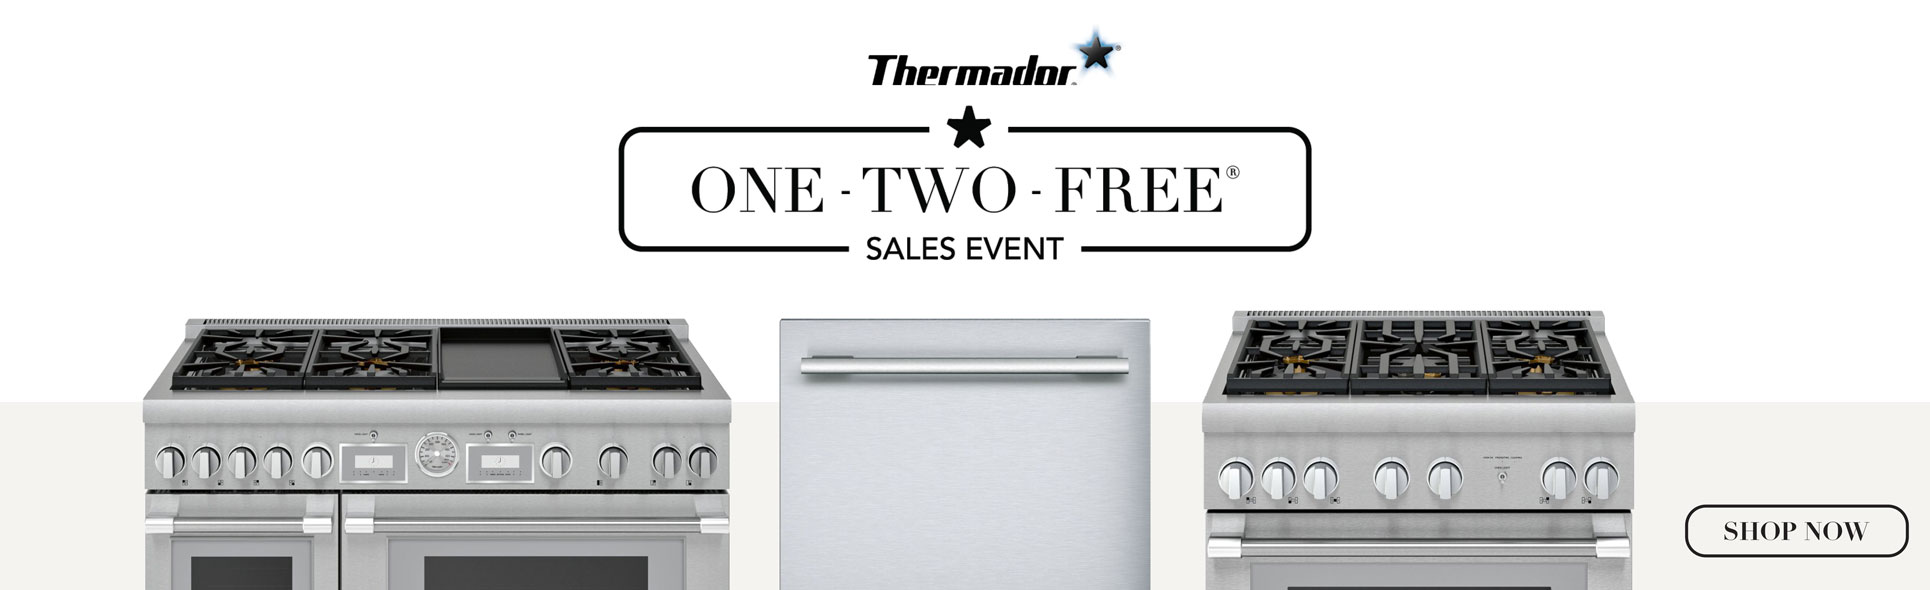 thermador appliances for remodeling projects at bray and scarff